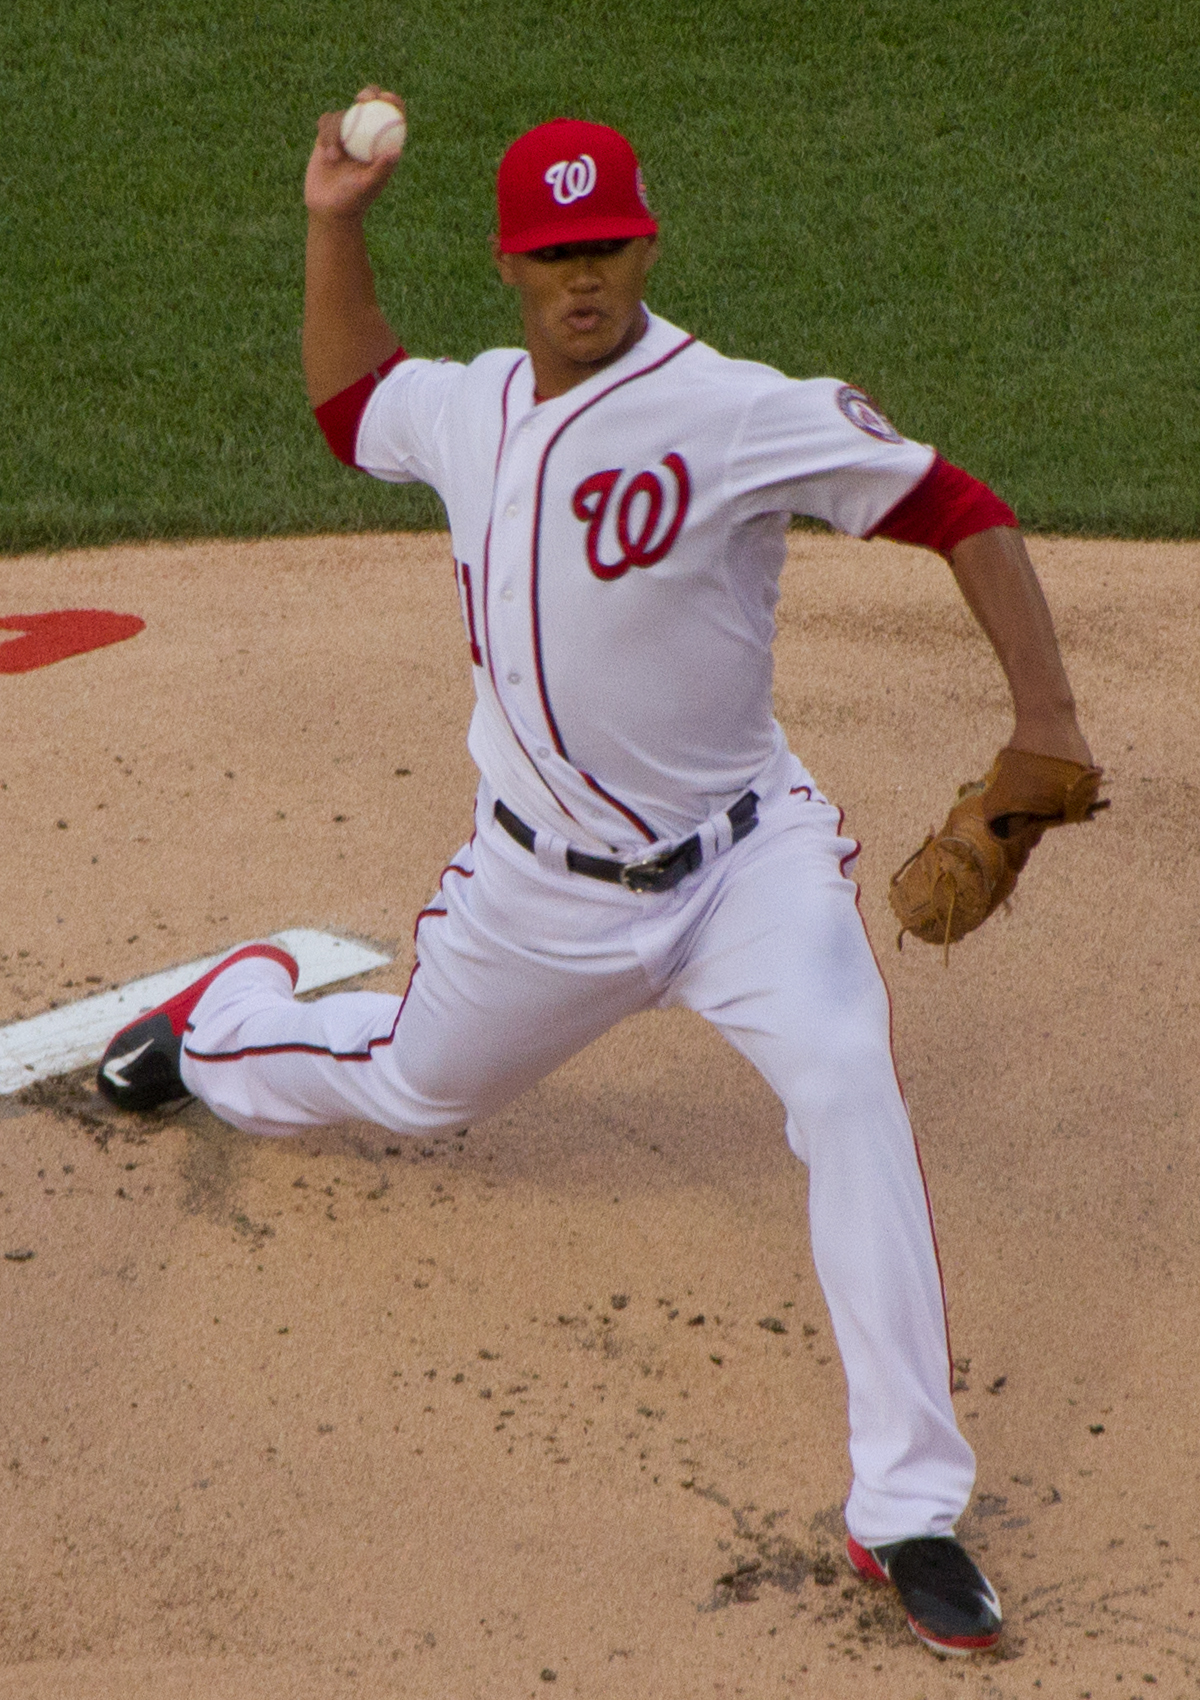 August 19, 2019 -- The Nationals's top hitter for the game was Juan Soto in the  13 to 0 againstthe Pirates on the road. The Nationals starting pitcher was Joe Ross.